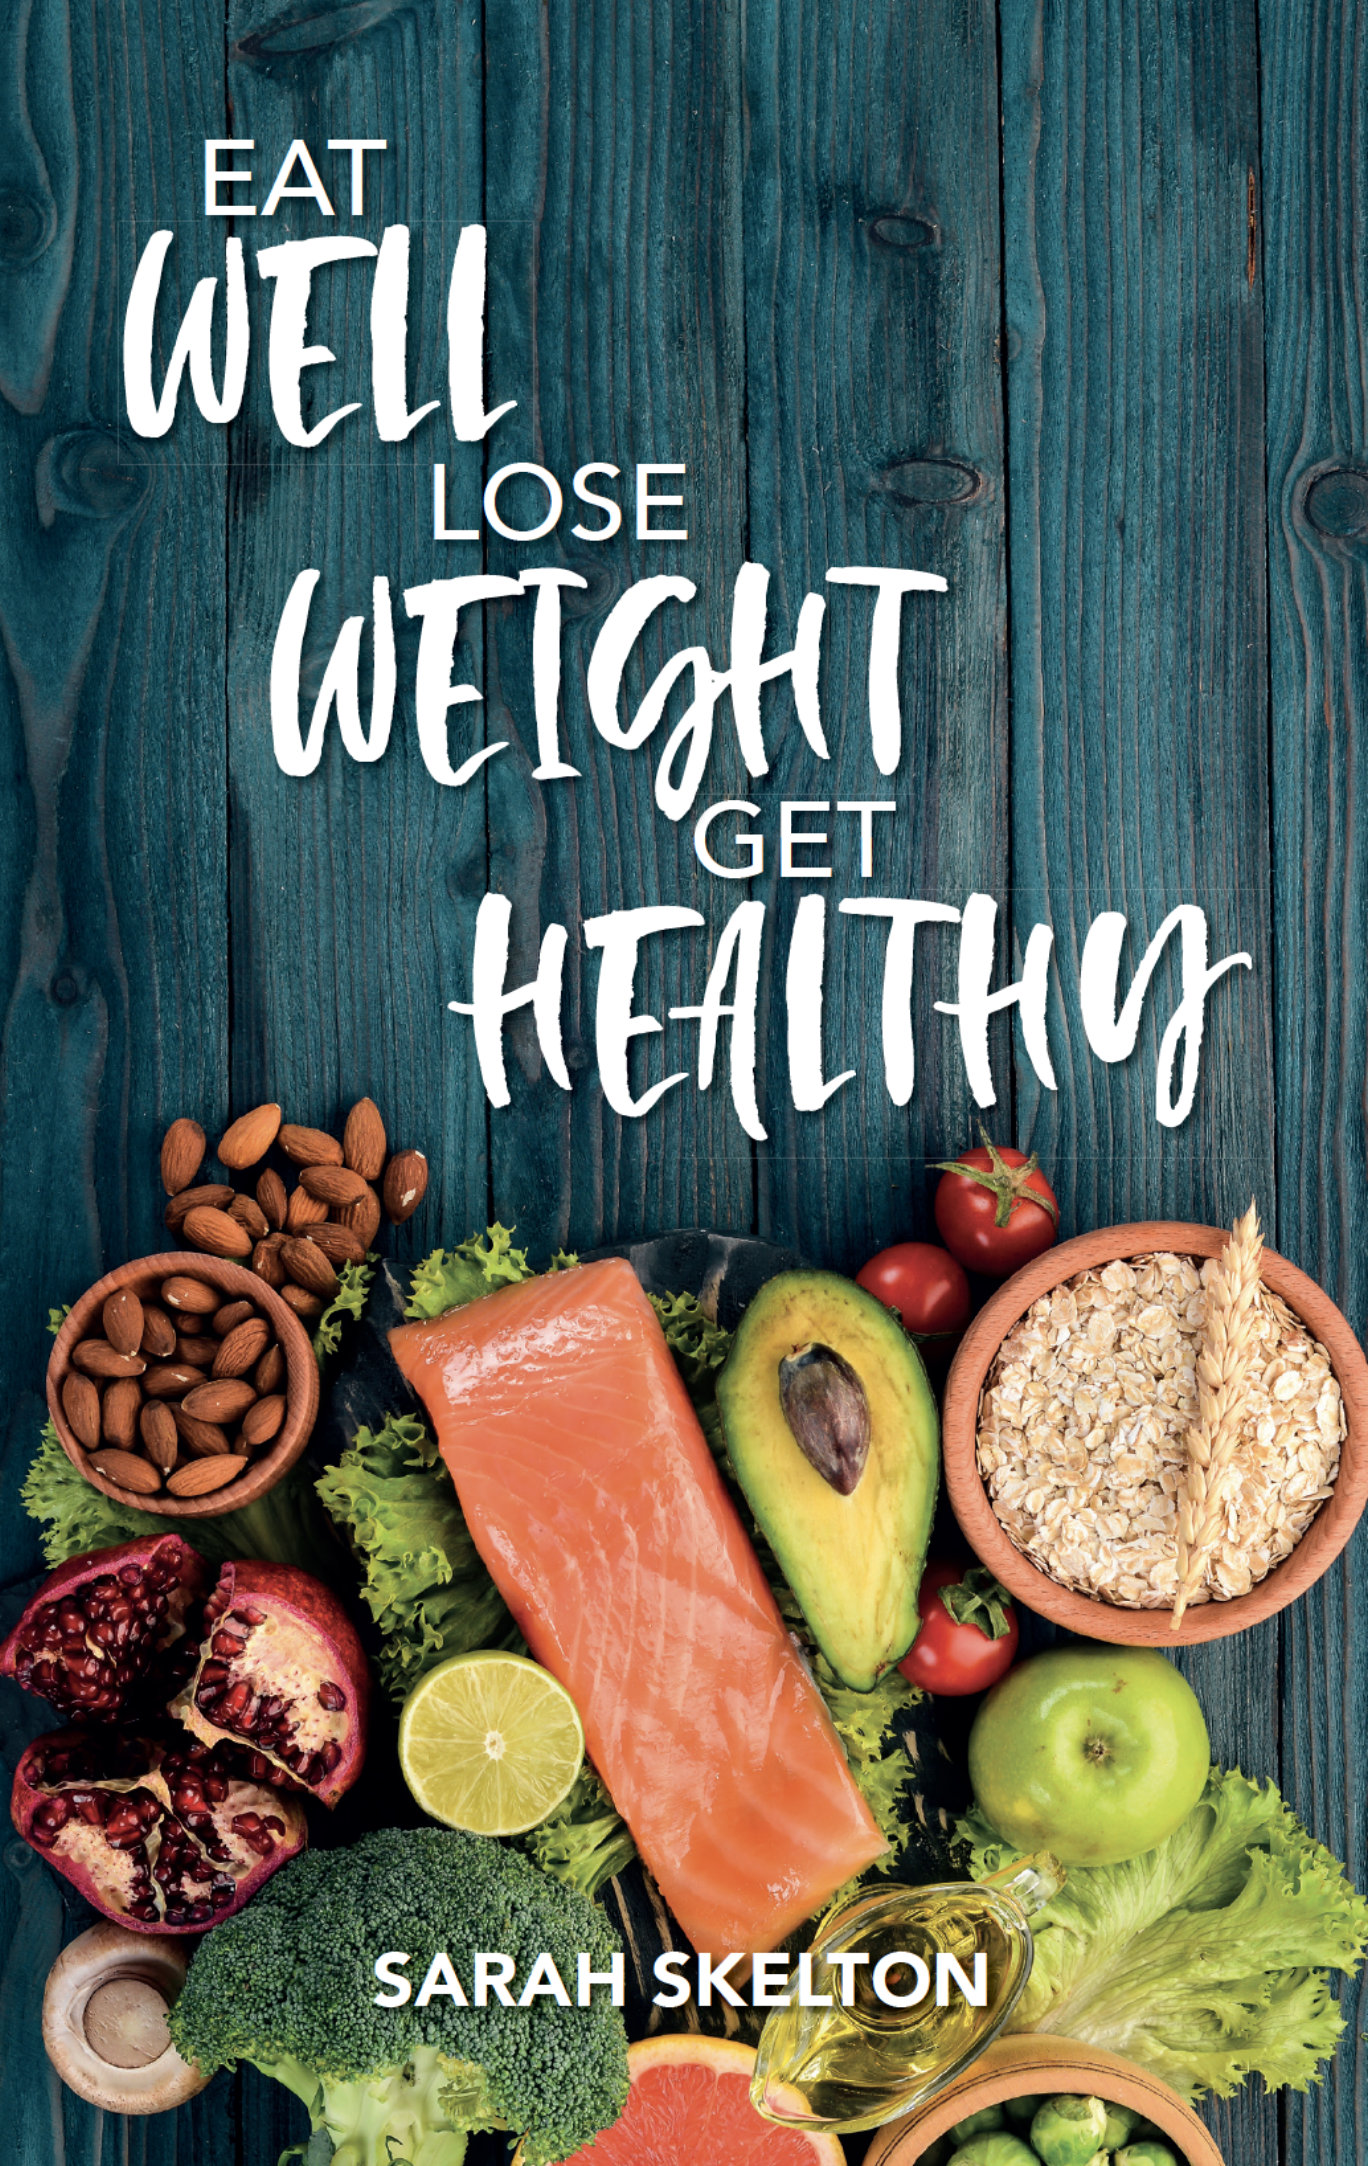 Eat well Lose weight Get healthy